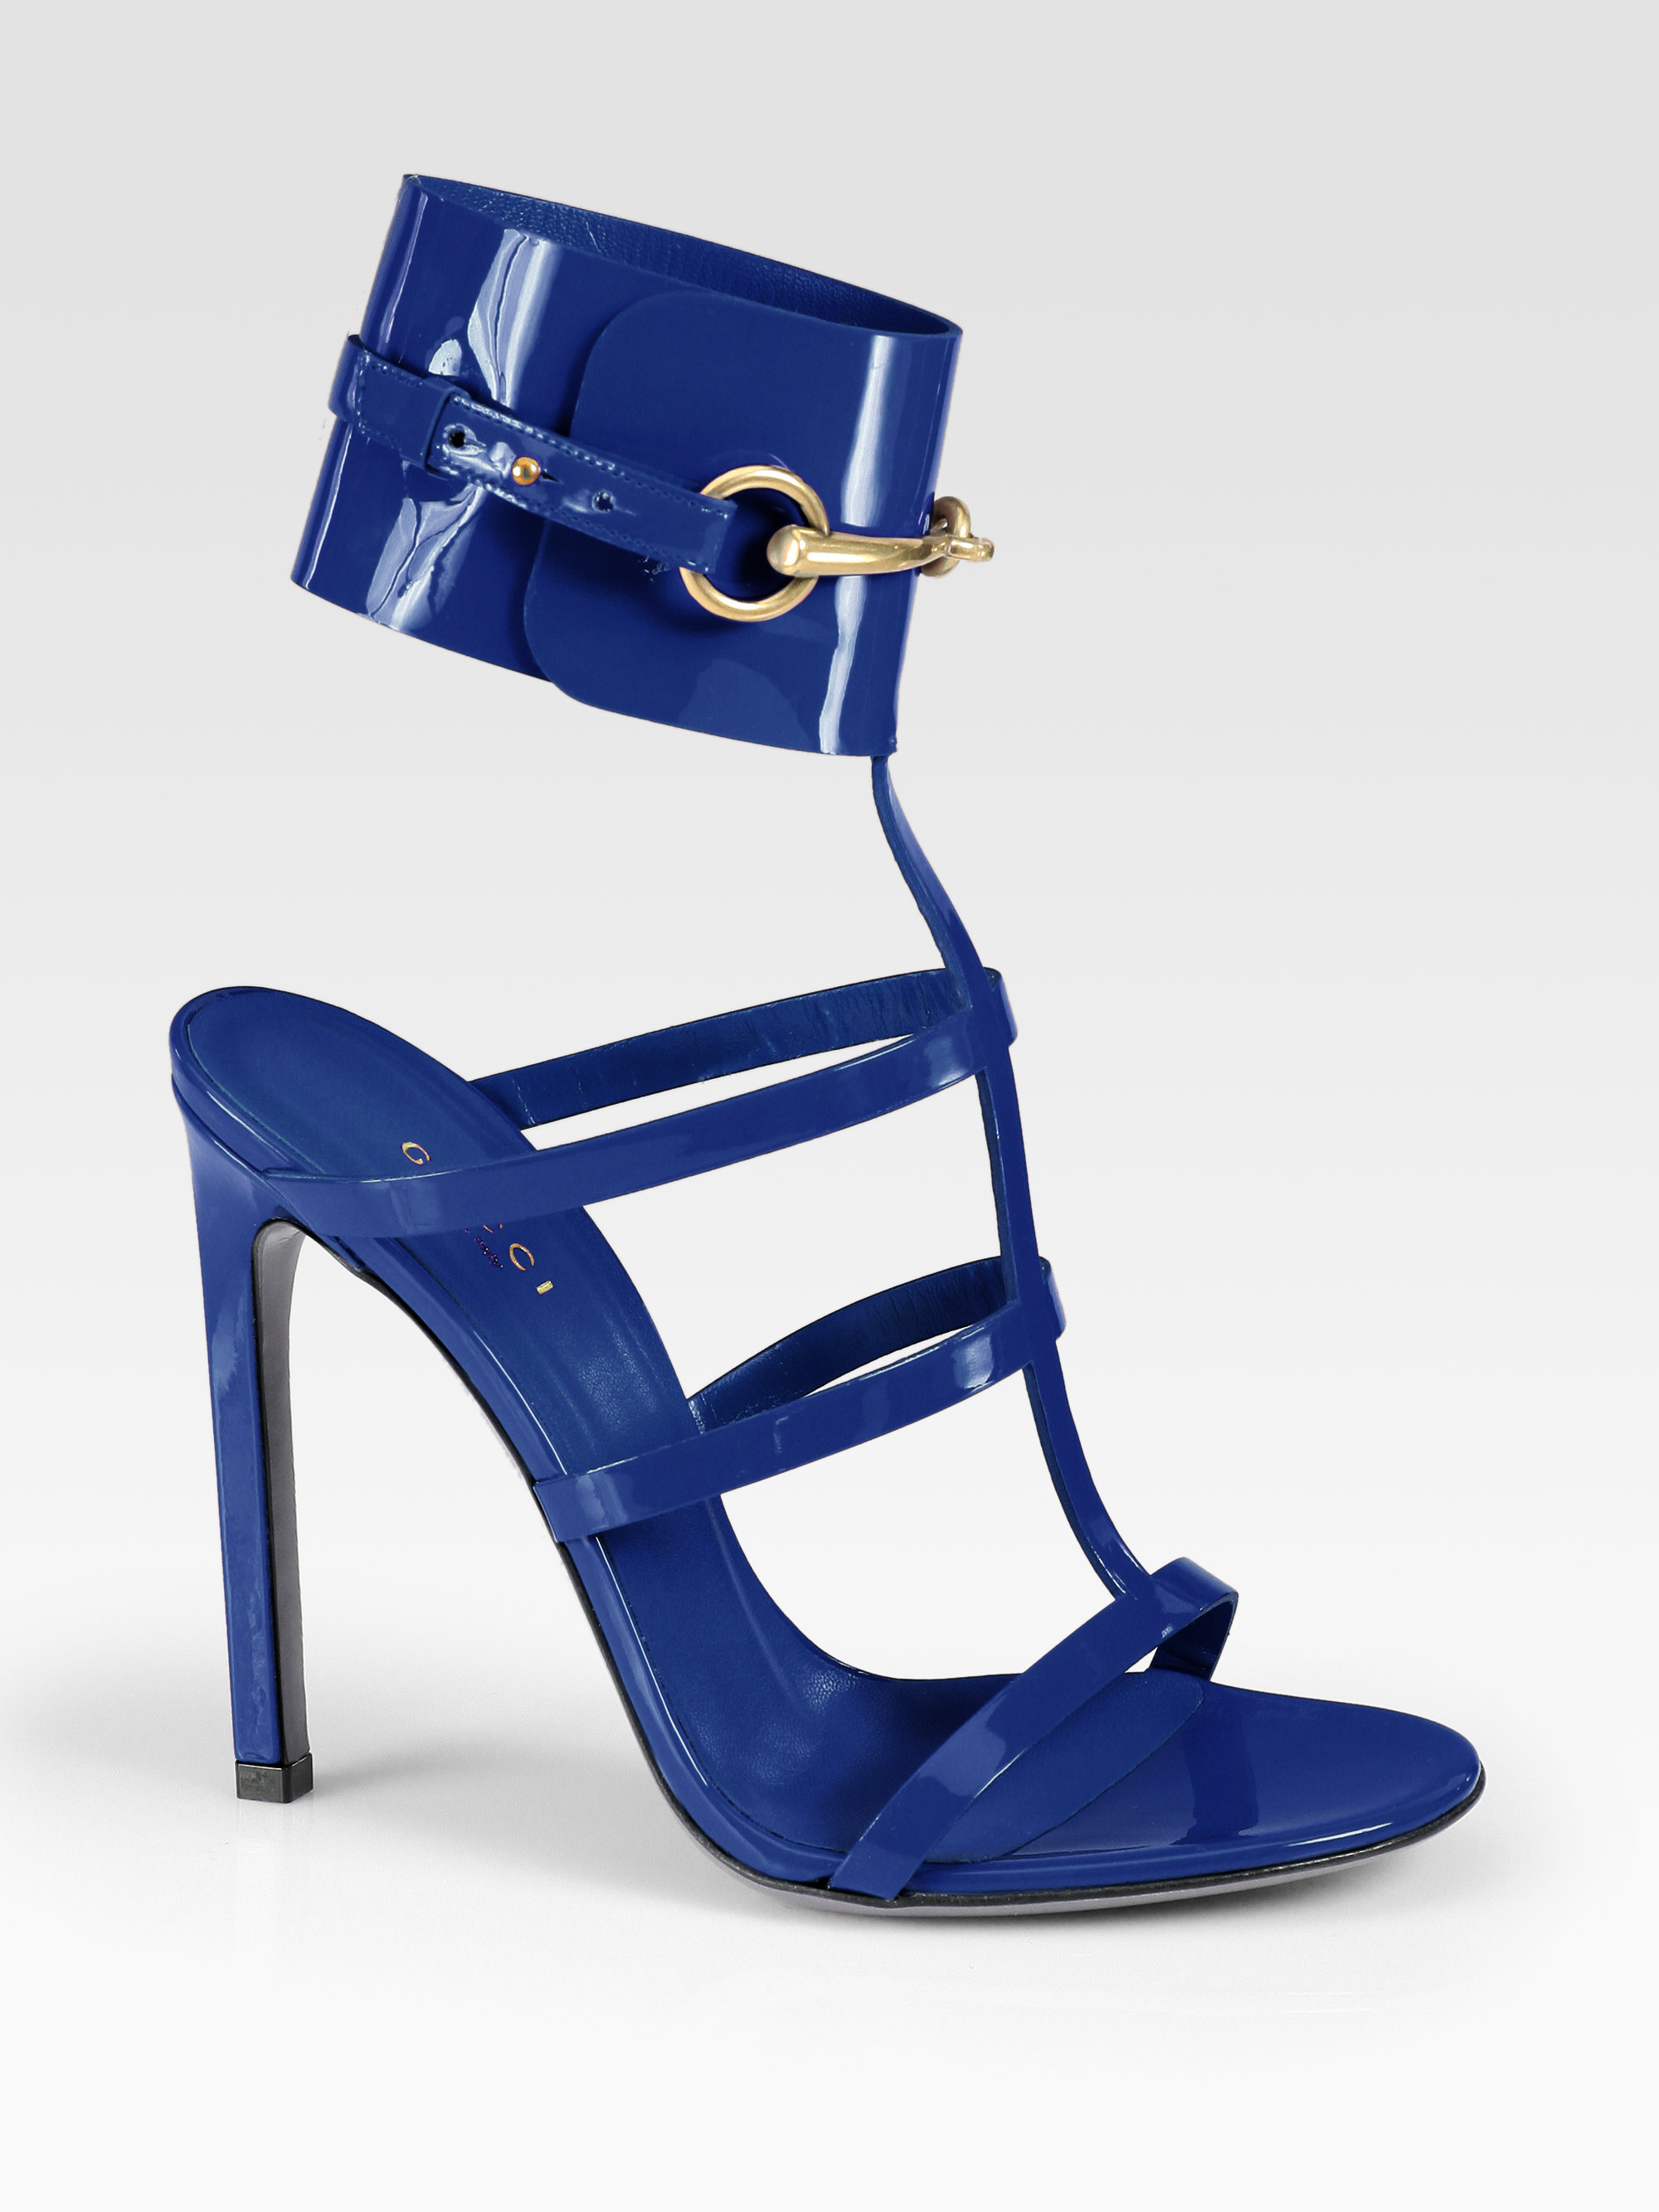 d6b8c04fed47 Lyst - Gucci Ursula Patent Leather Horsebit Ankle Strap Sandals in Blue